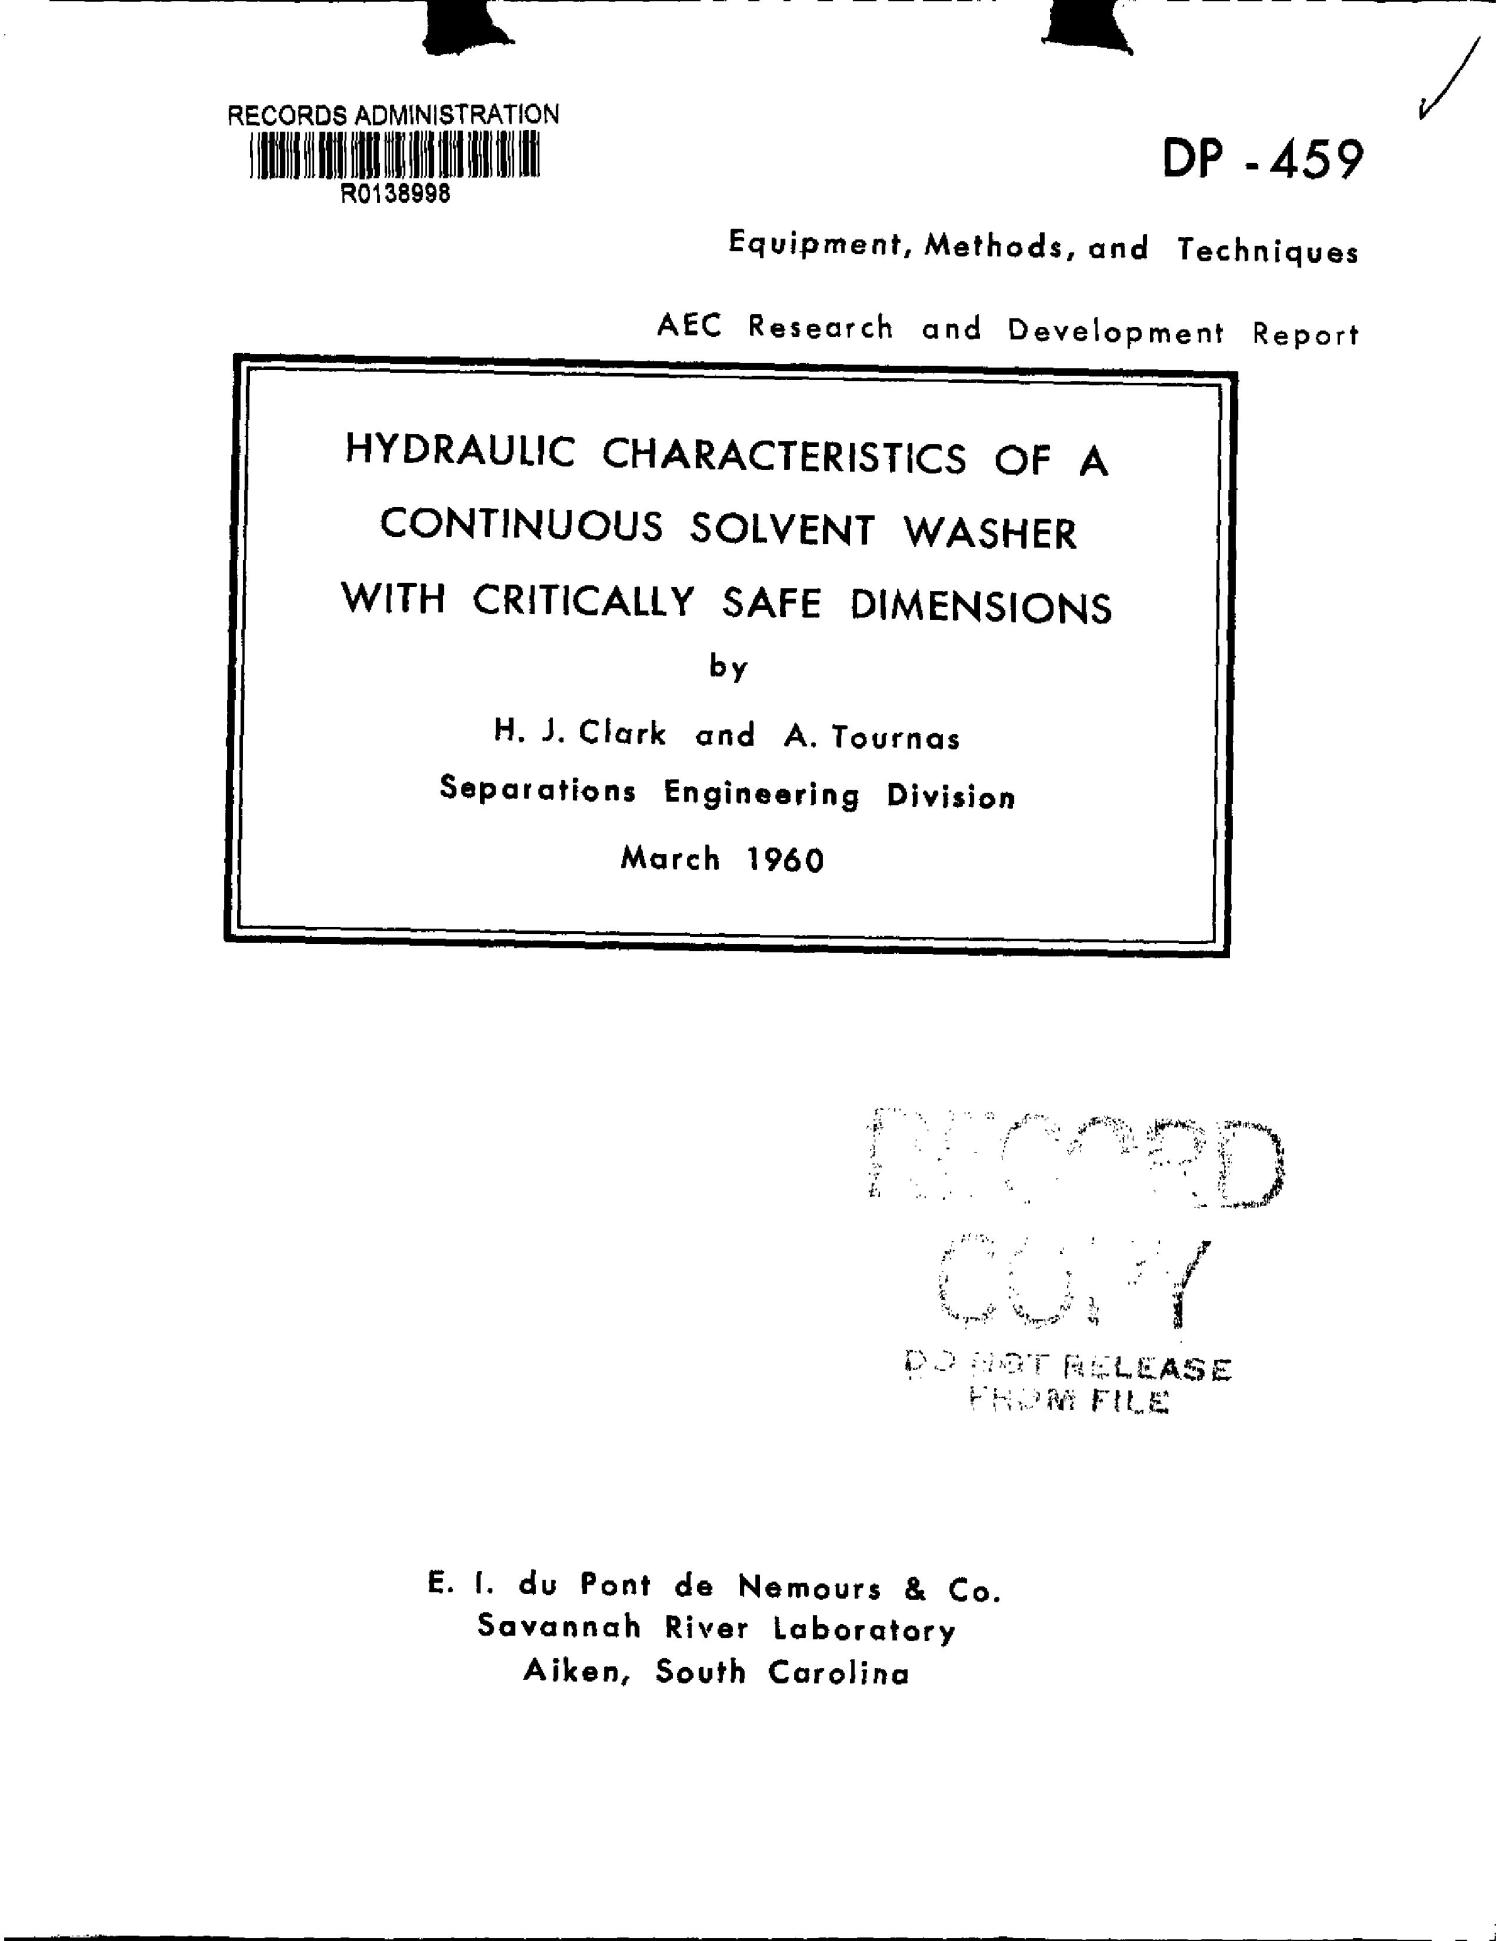 HYDRAULIC CHARACTERISTICS OF A CONTINUOUS SOLVENT WASHER WITH CRITICALLY SAFE DIMENSIONS                                                                                                      [Sequence #]: 1 of 12